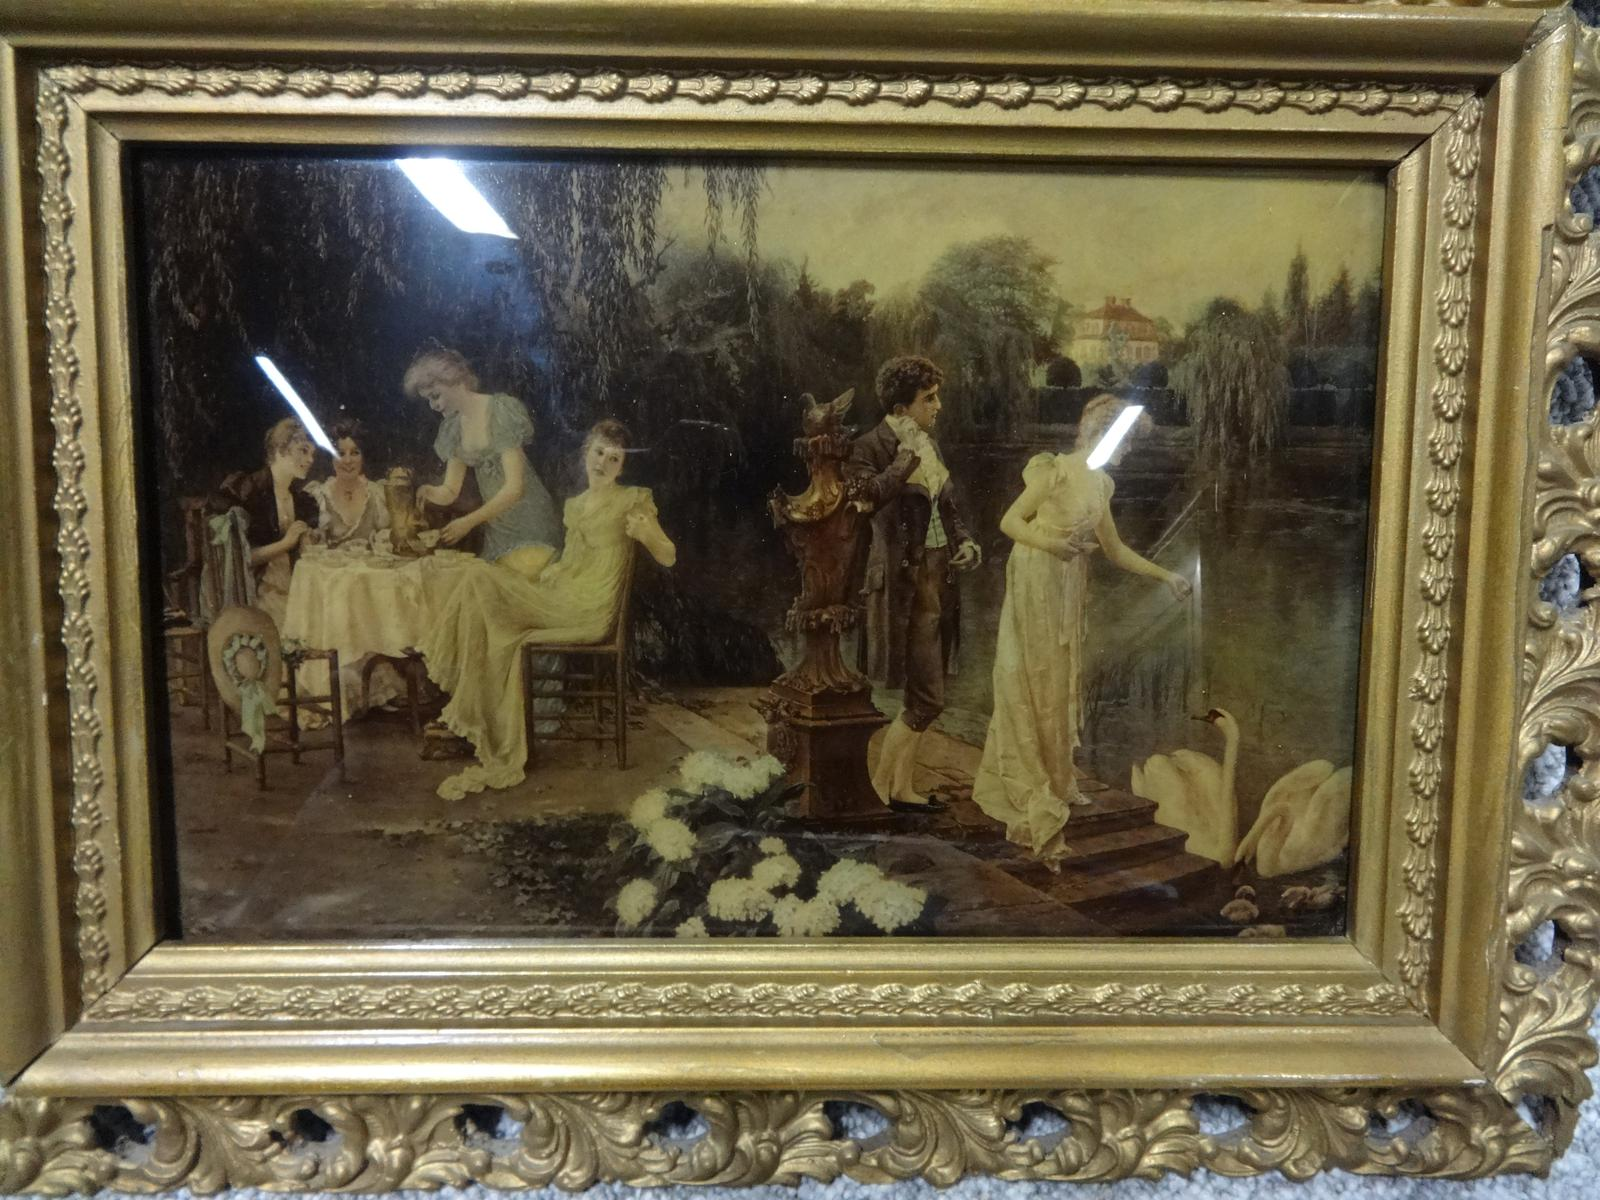 Pair of C19th Chrystoleums in Period Gilt Frames (1 of 1)